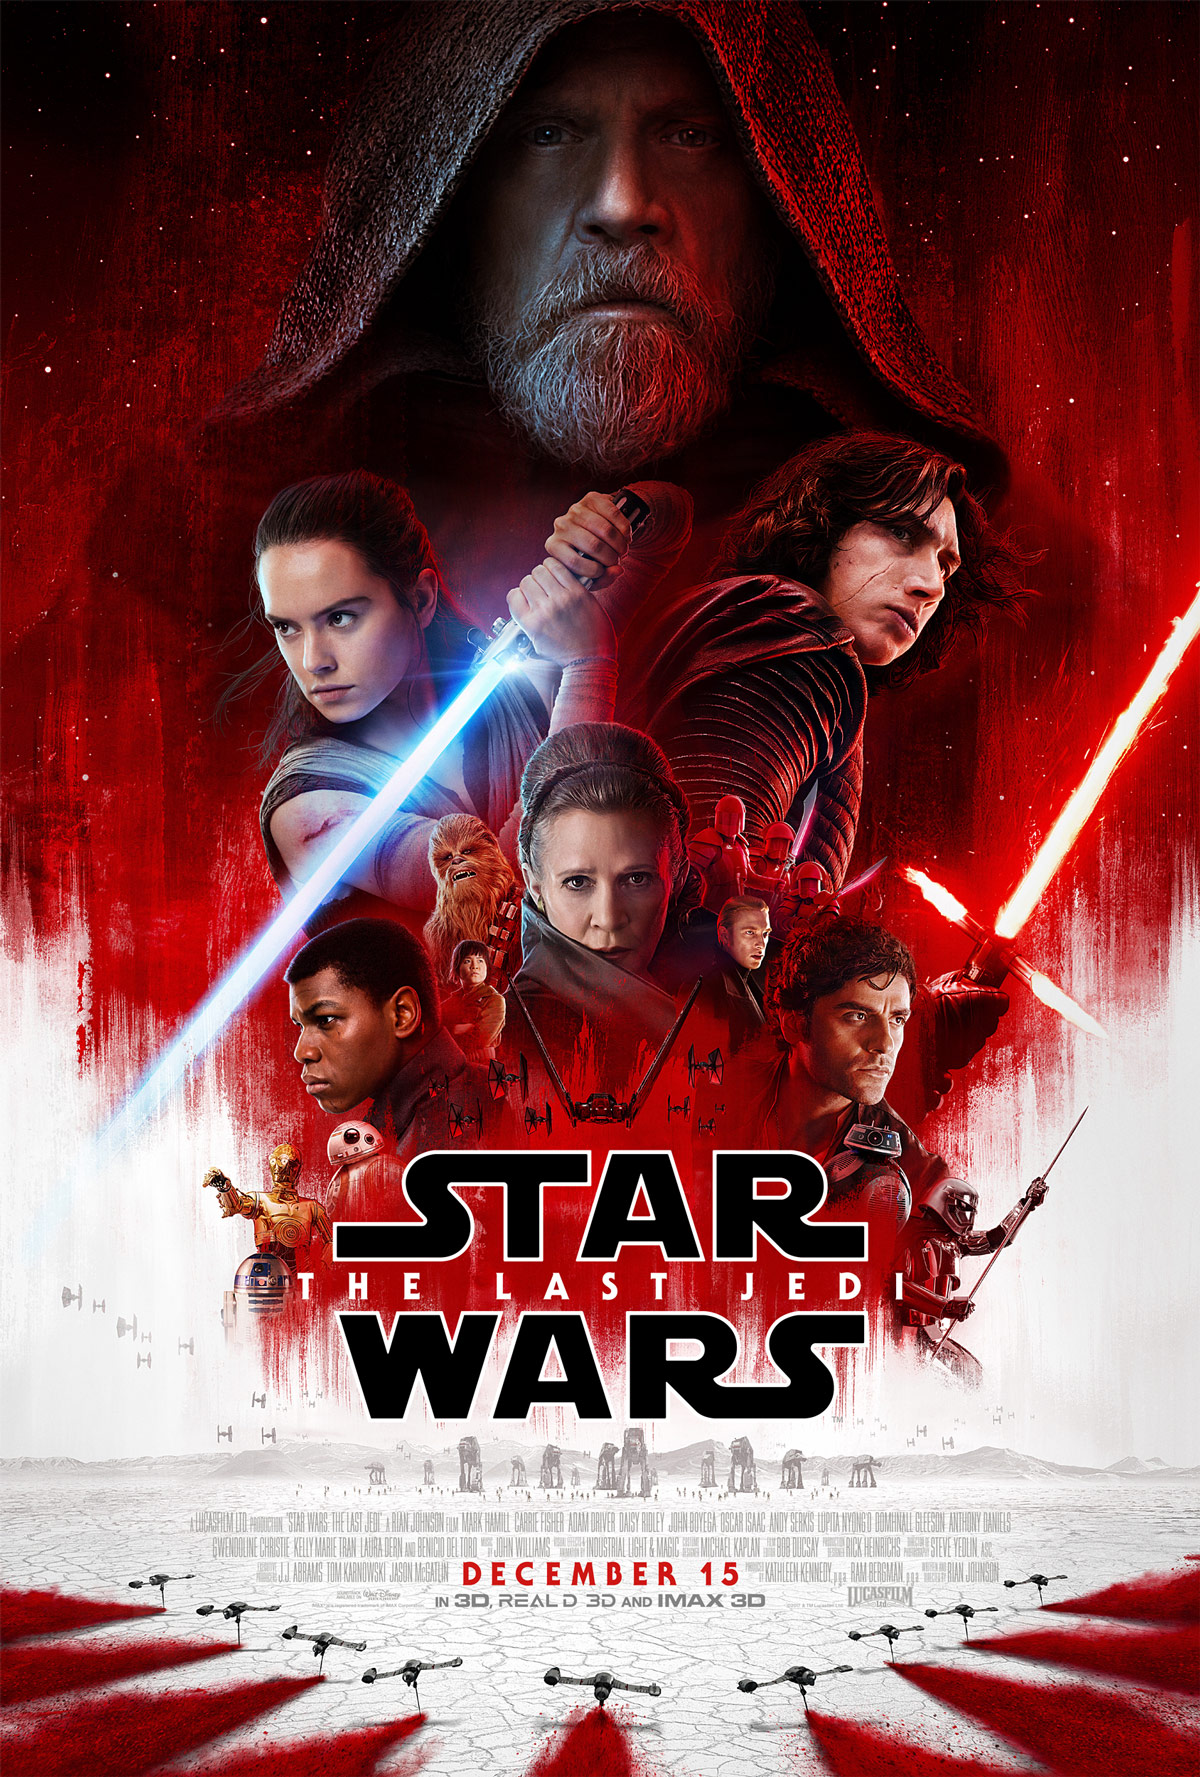 Best Movie of the Year – Star Wars: The Last Jedi?